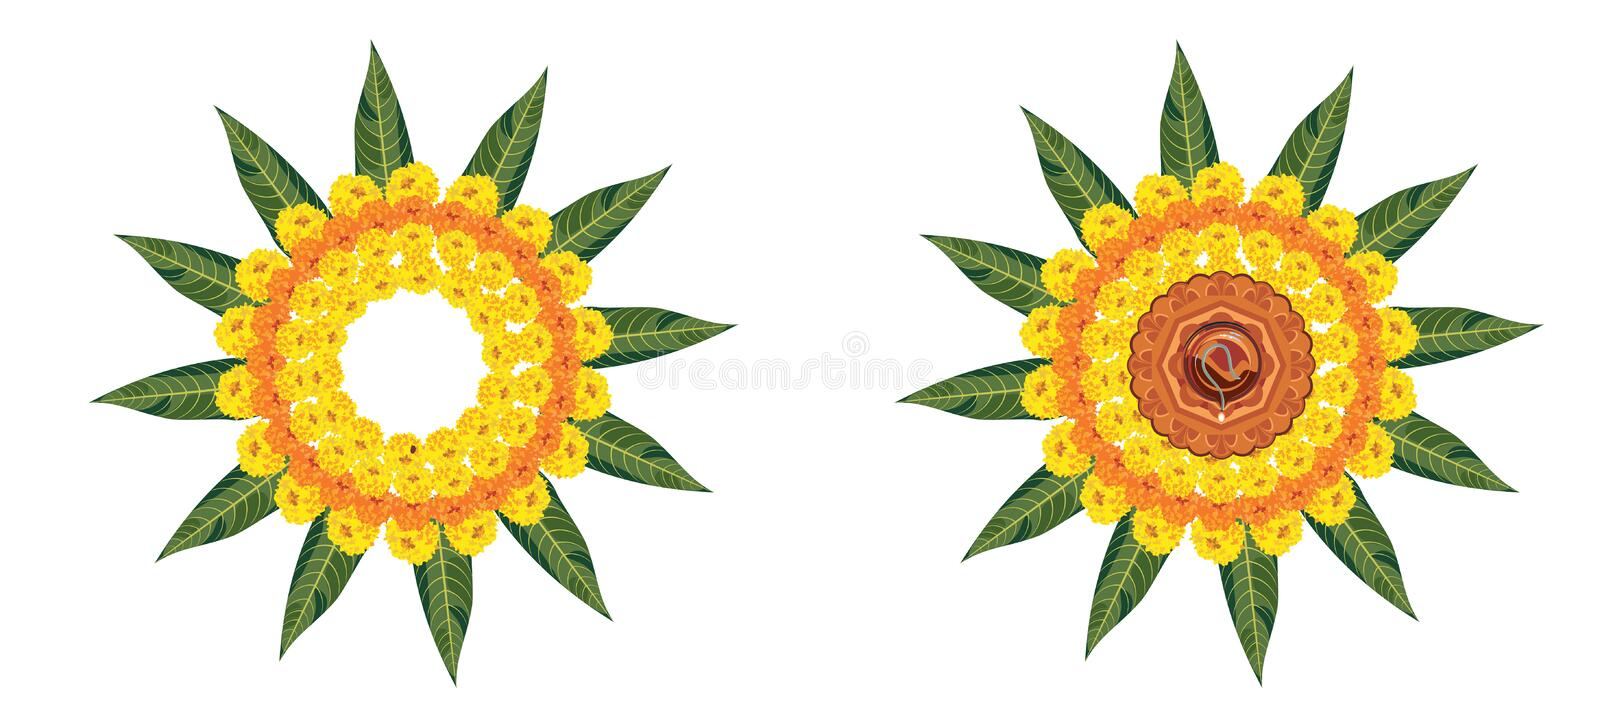 Stock Illustration of flower rangoli for Diwali or pongal or onam made using marigold or zendu flowers and red rose petals over wh royalty free stock image